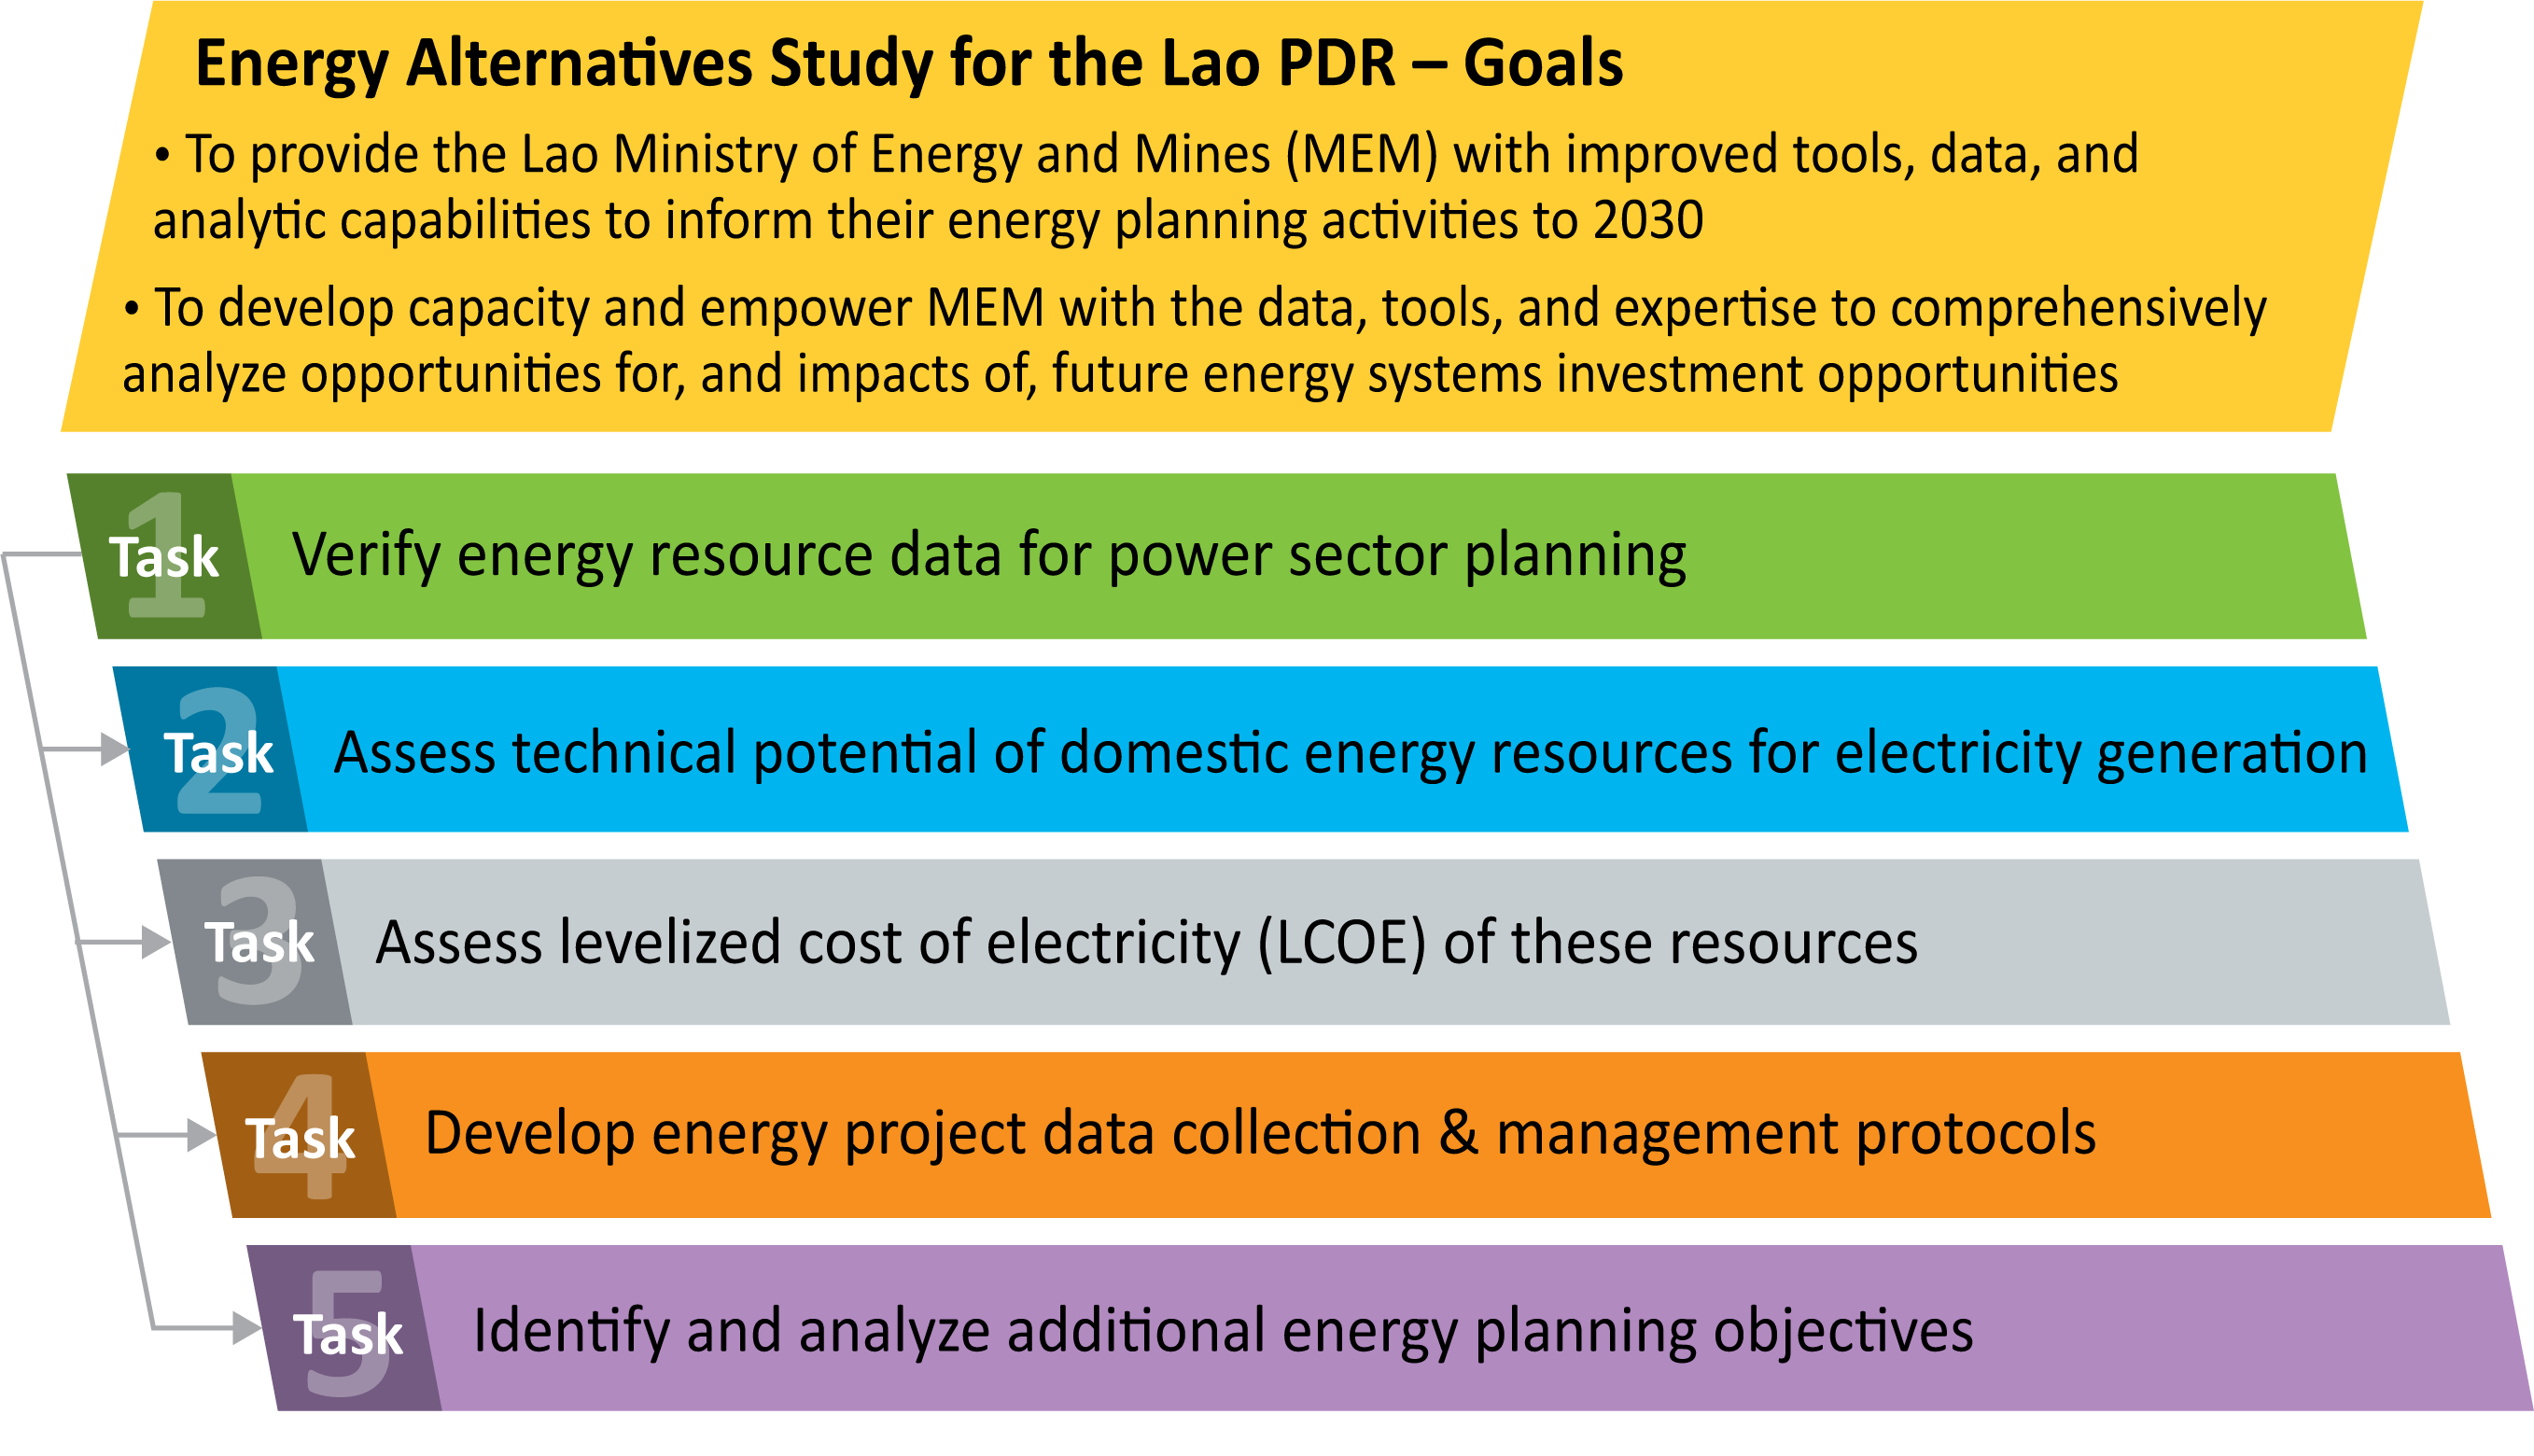 A roadmap of the goals and tasks of the Energy Alternatives Study for Lao PDR